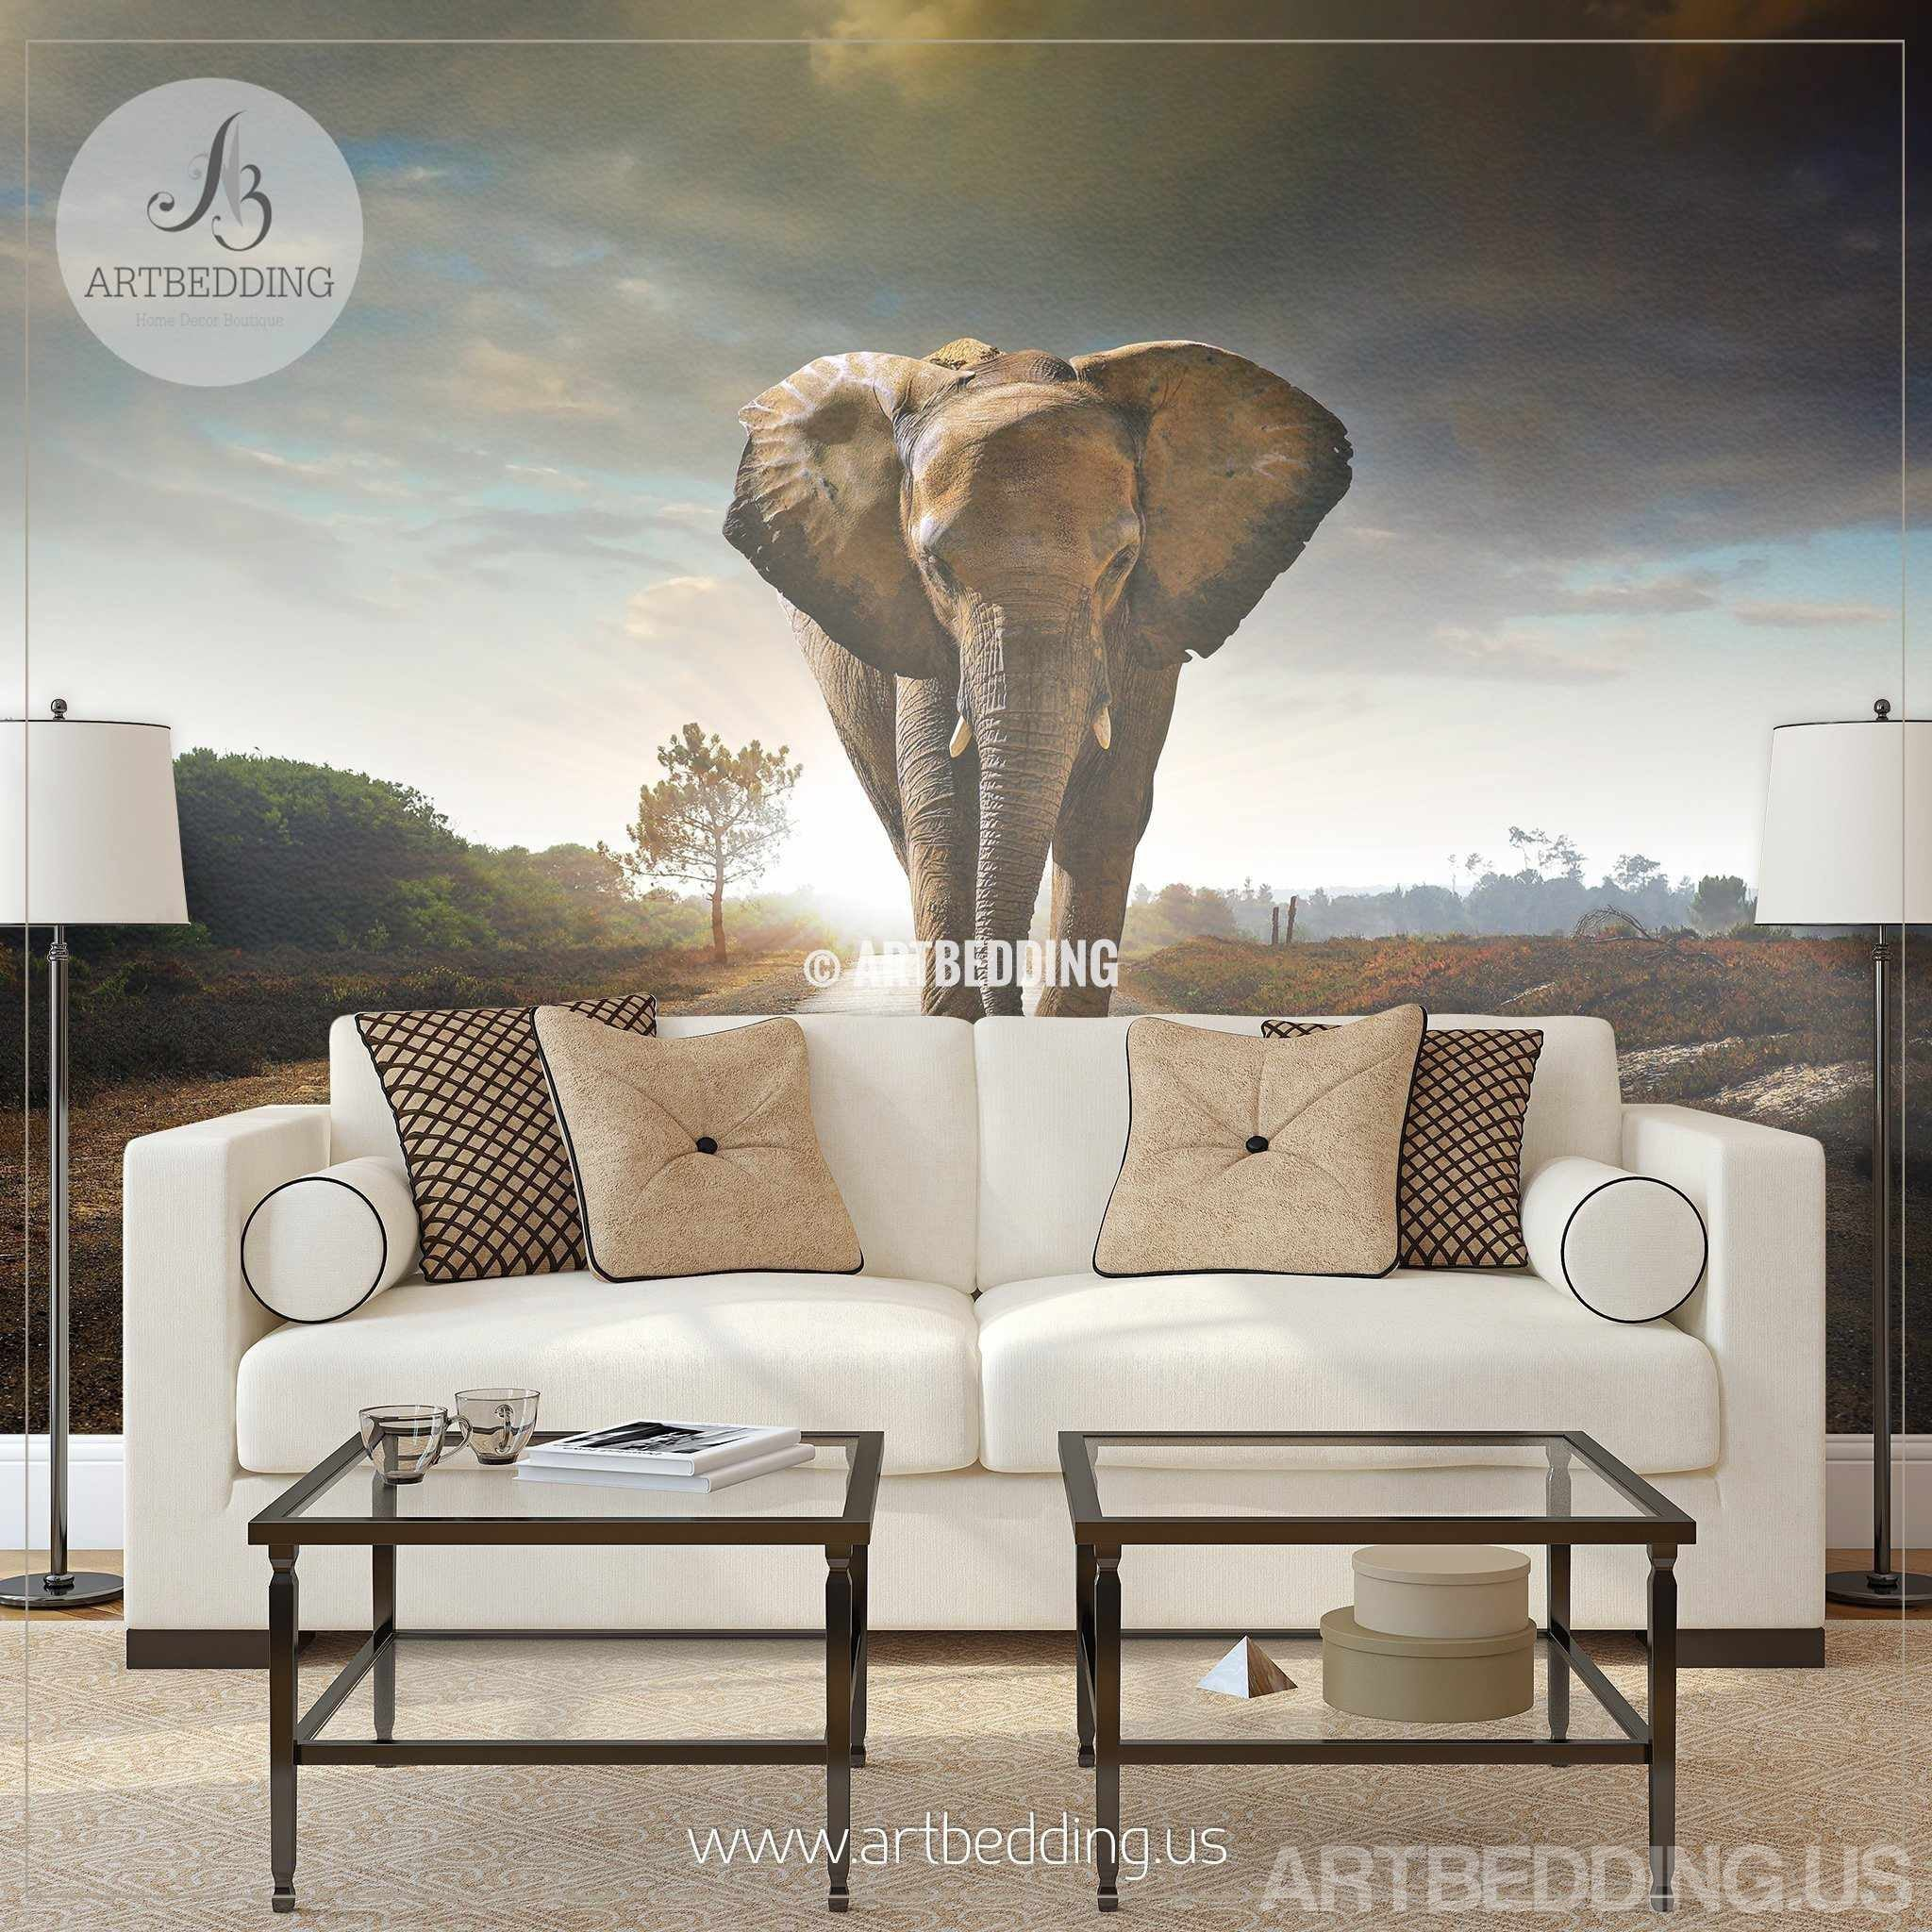 ... African Elephant Wall Mural, Elephant Self Adhesive Peel U0026 Stick Photo  Mural, Wild Africa ...